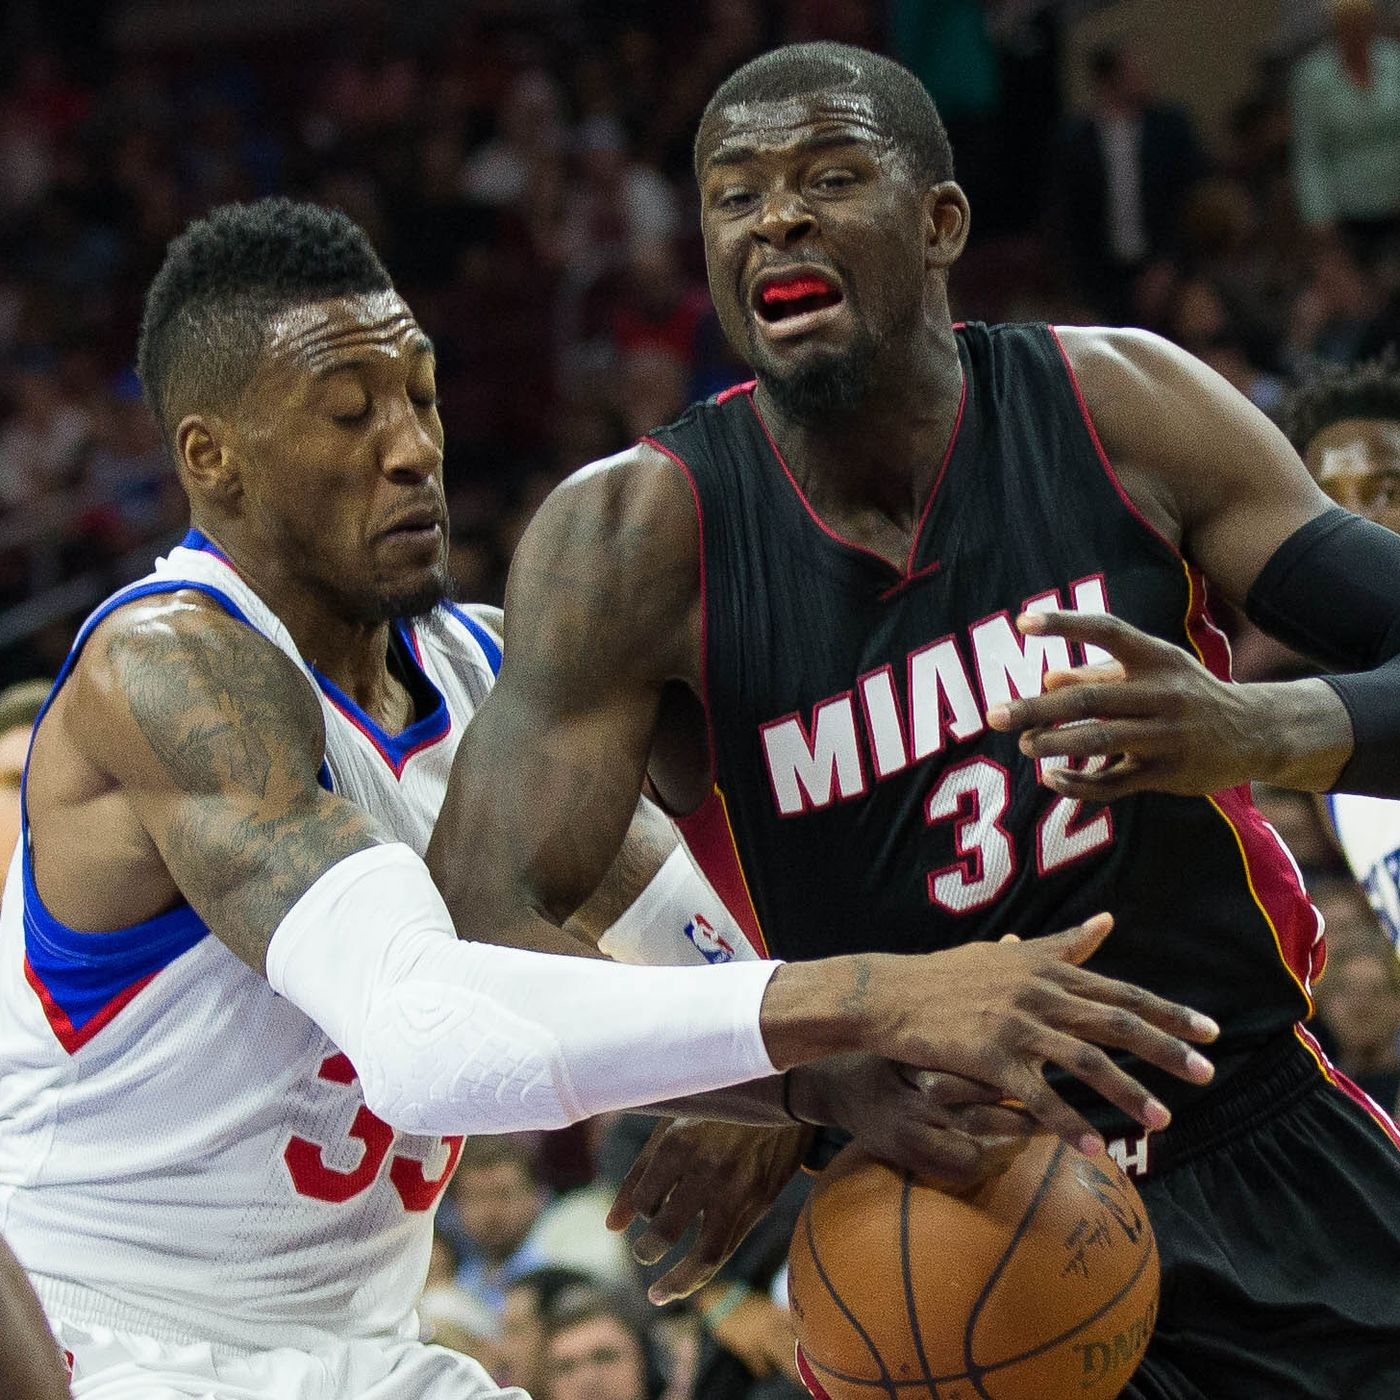 Sixers-Heat Final Score: Philadelphia loses to Miami in